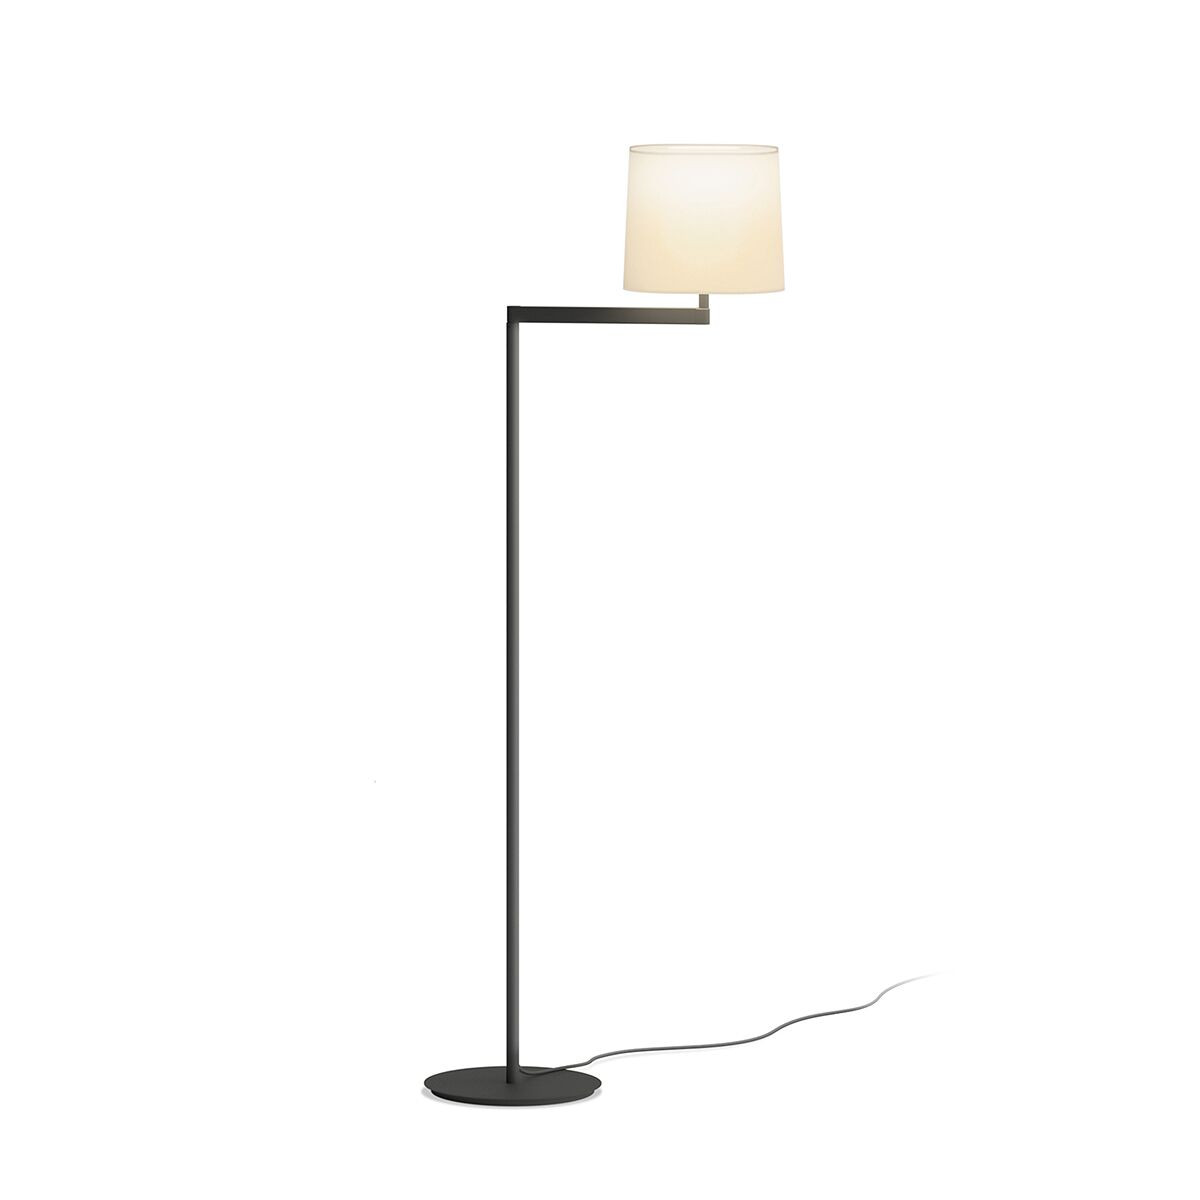 Swing shaded floor lamp by vibia 0503 18 new swing floor lamp by vibia by vibia aloadofball Gallery